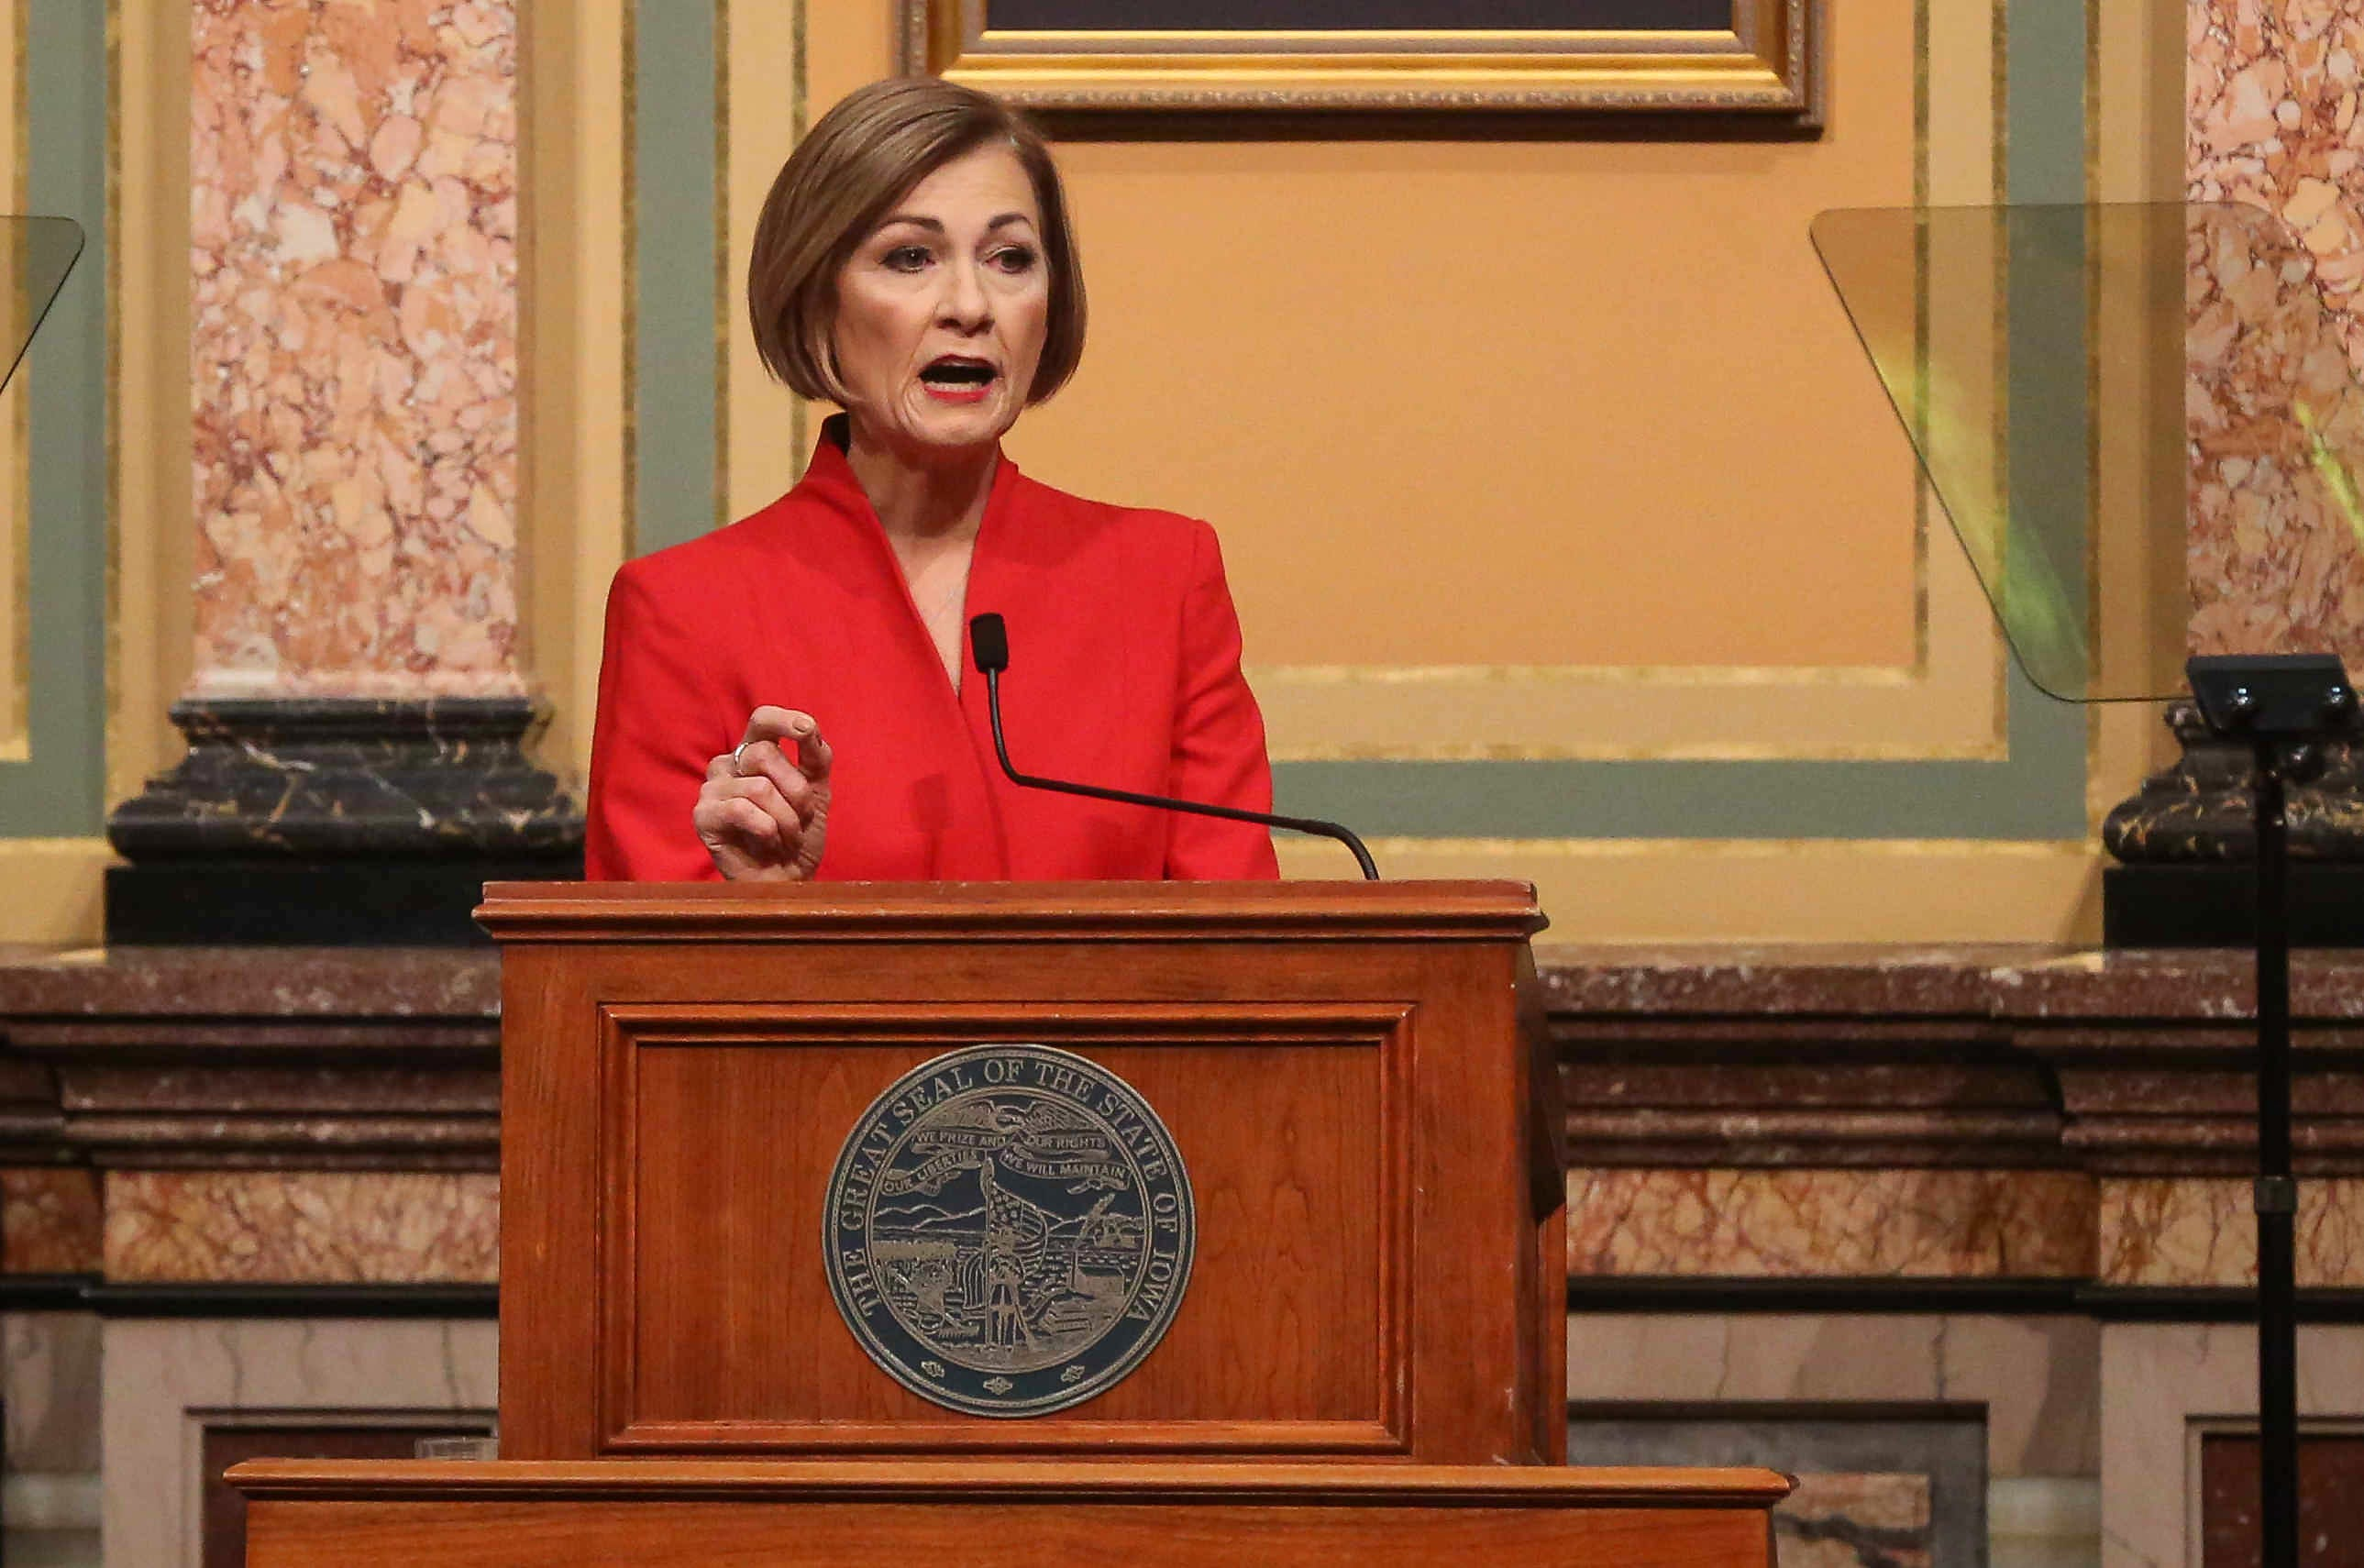 Iowa Gov. Kim Reynolds unveils schooling, tax policy changes for 2021